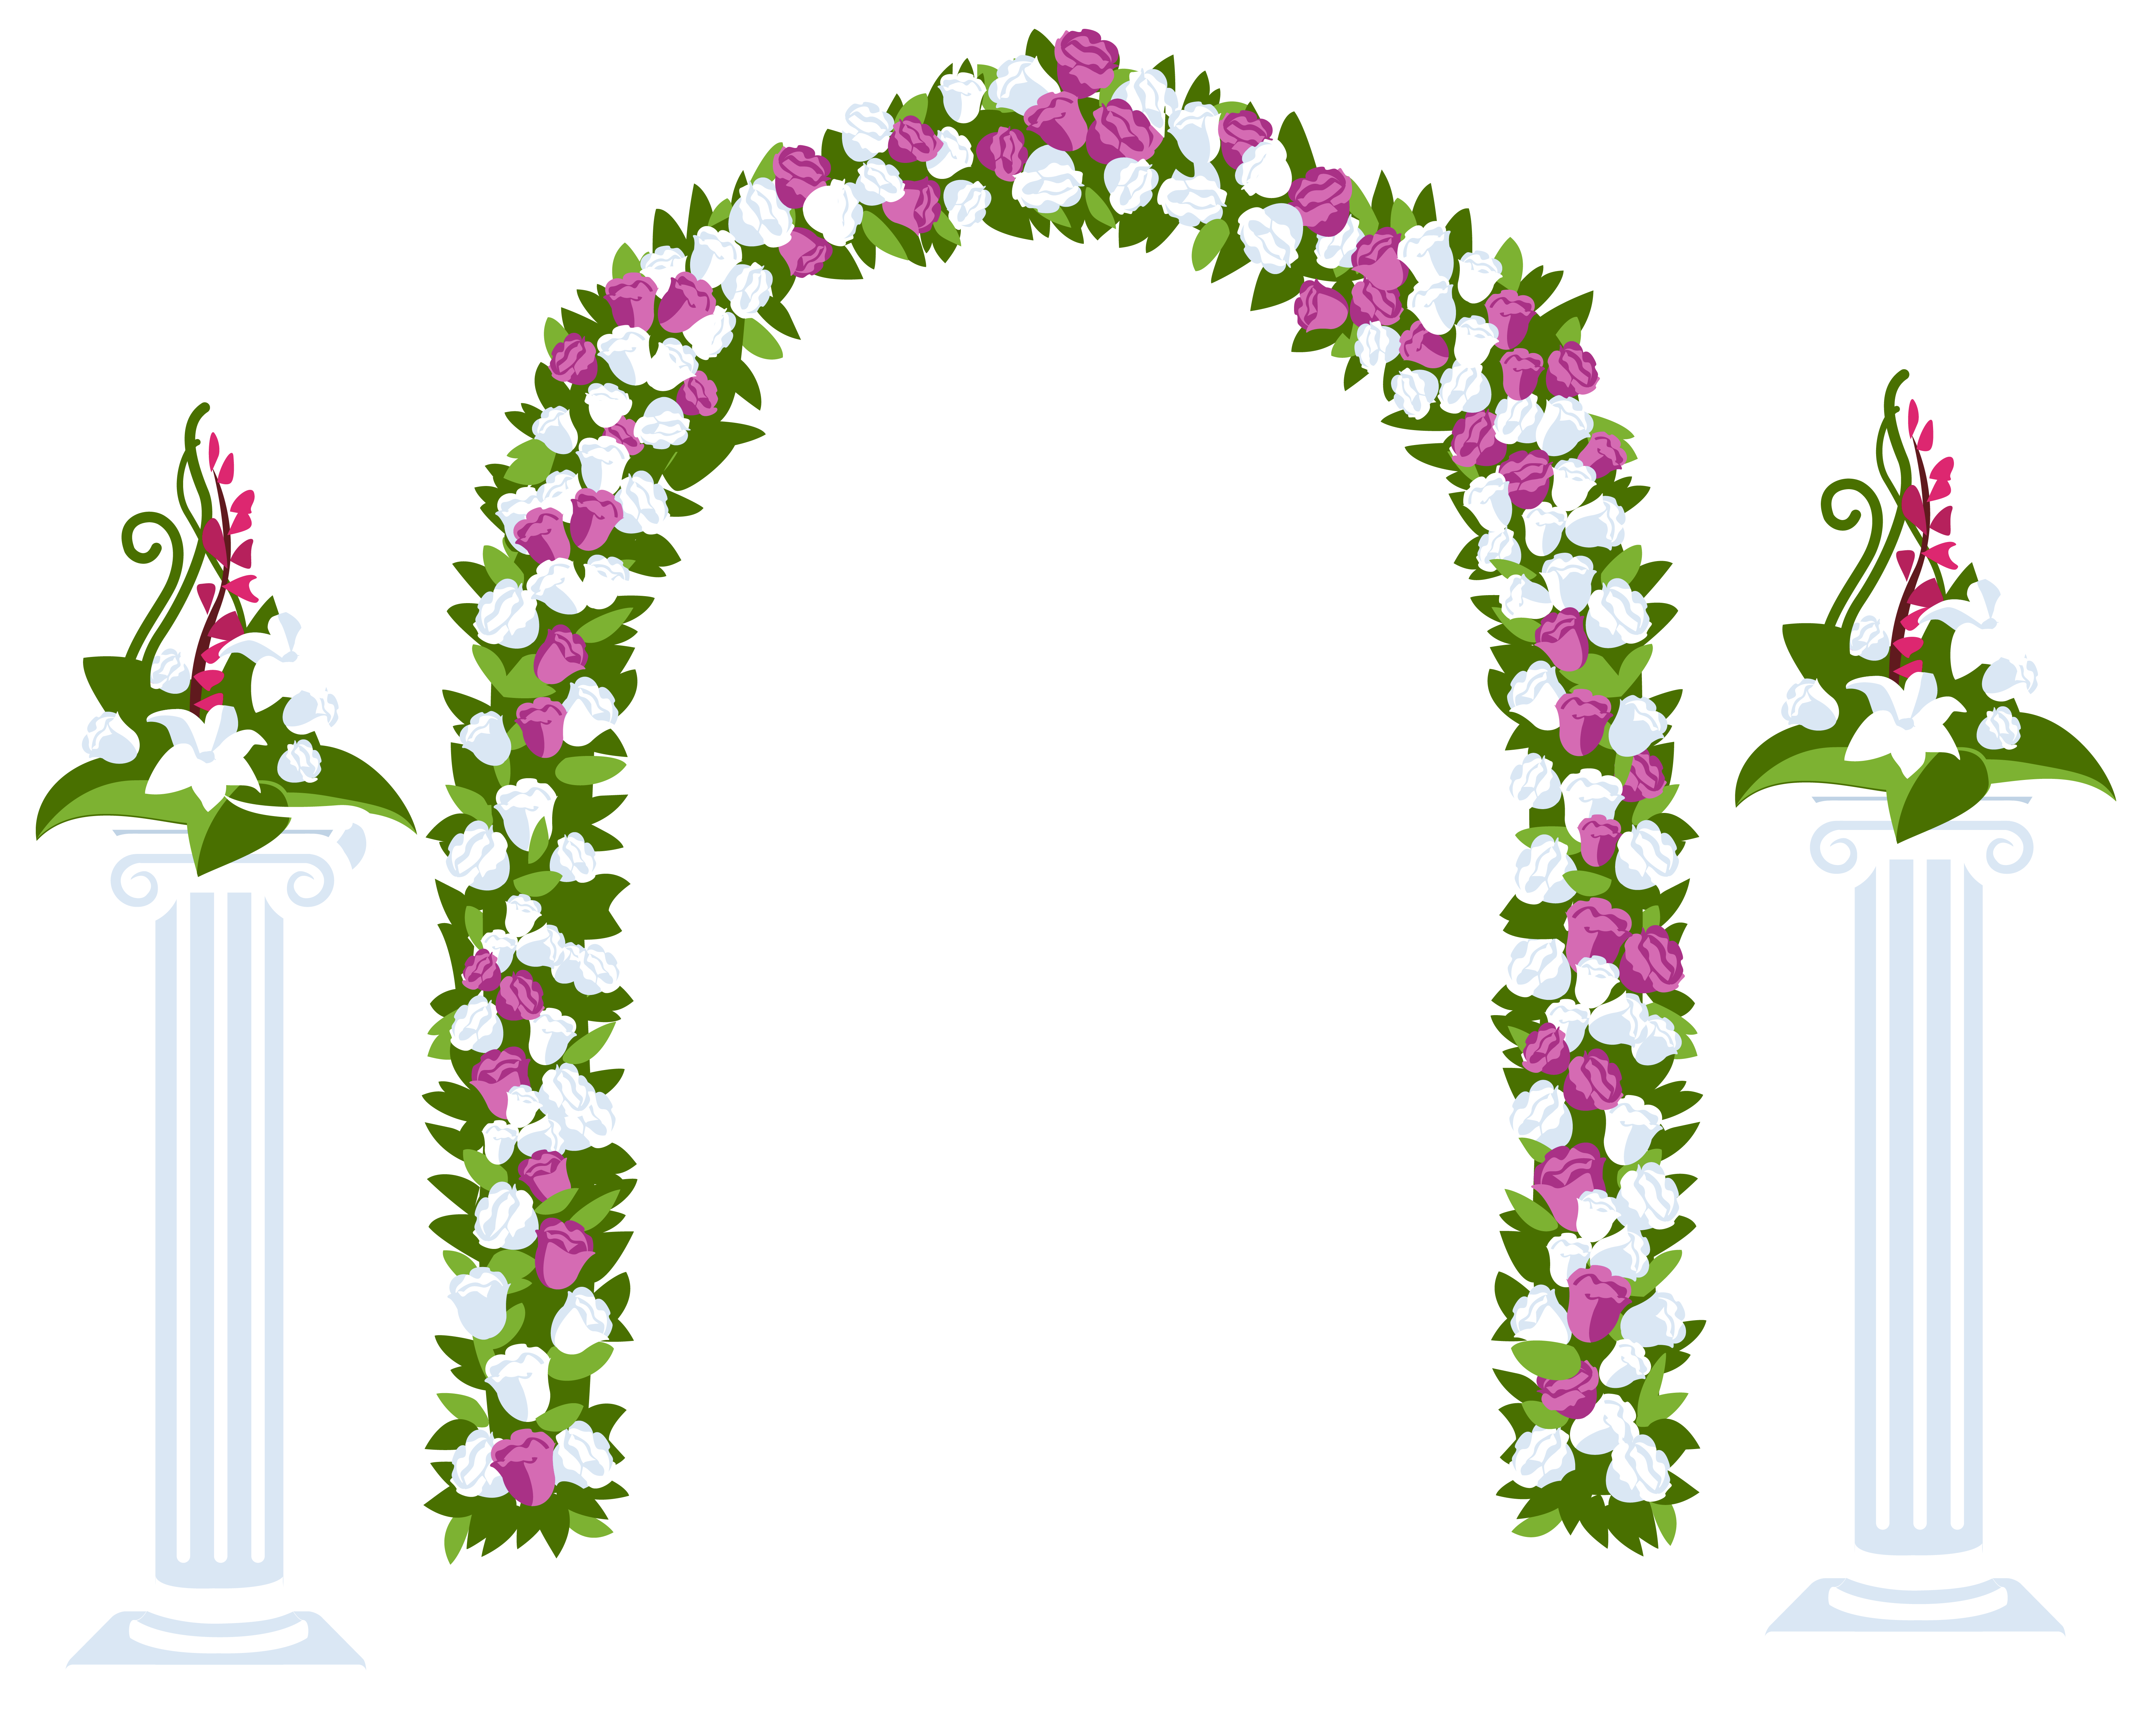 Flower arch clipart png transparent Floral Arch and Columns - Best WEB Clipart png transparent